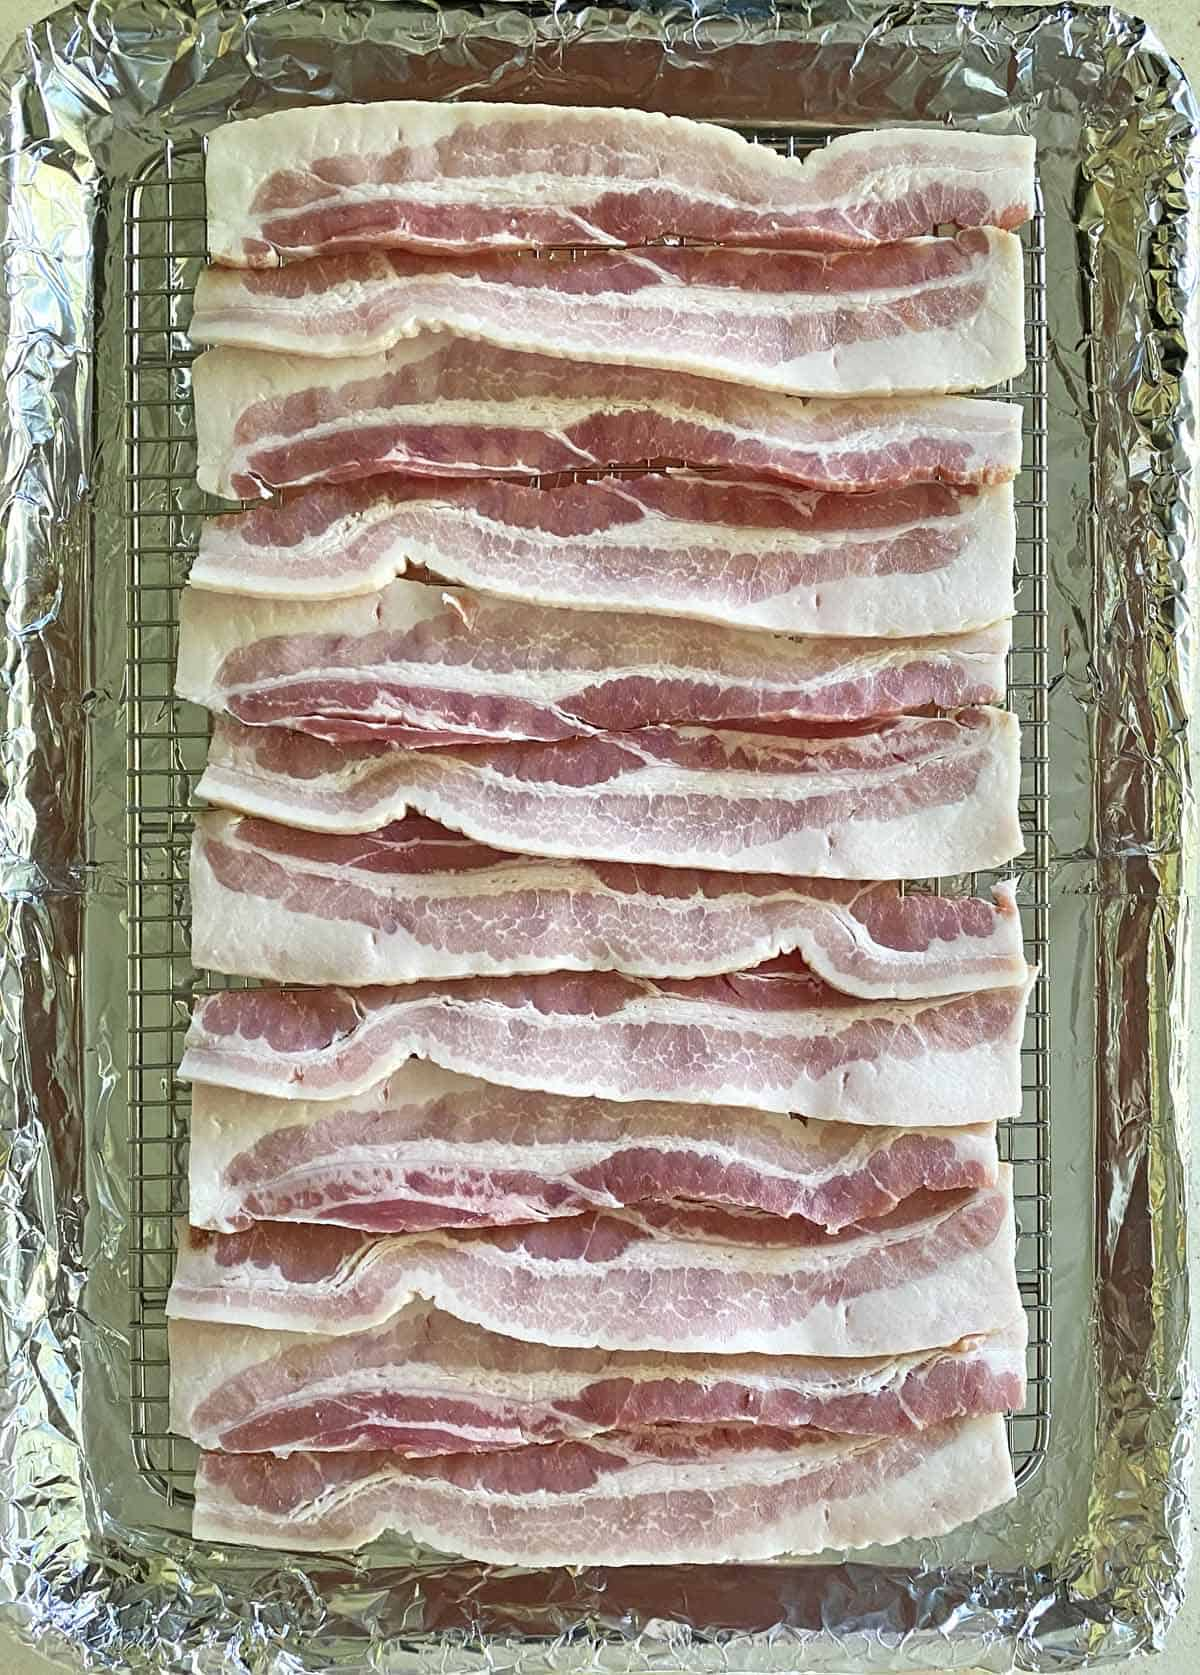 12 strips of thick cut bacon arranged on a baking rack placed on a foil wrapped baking sheet